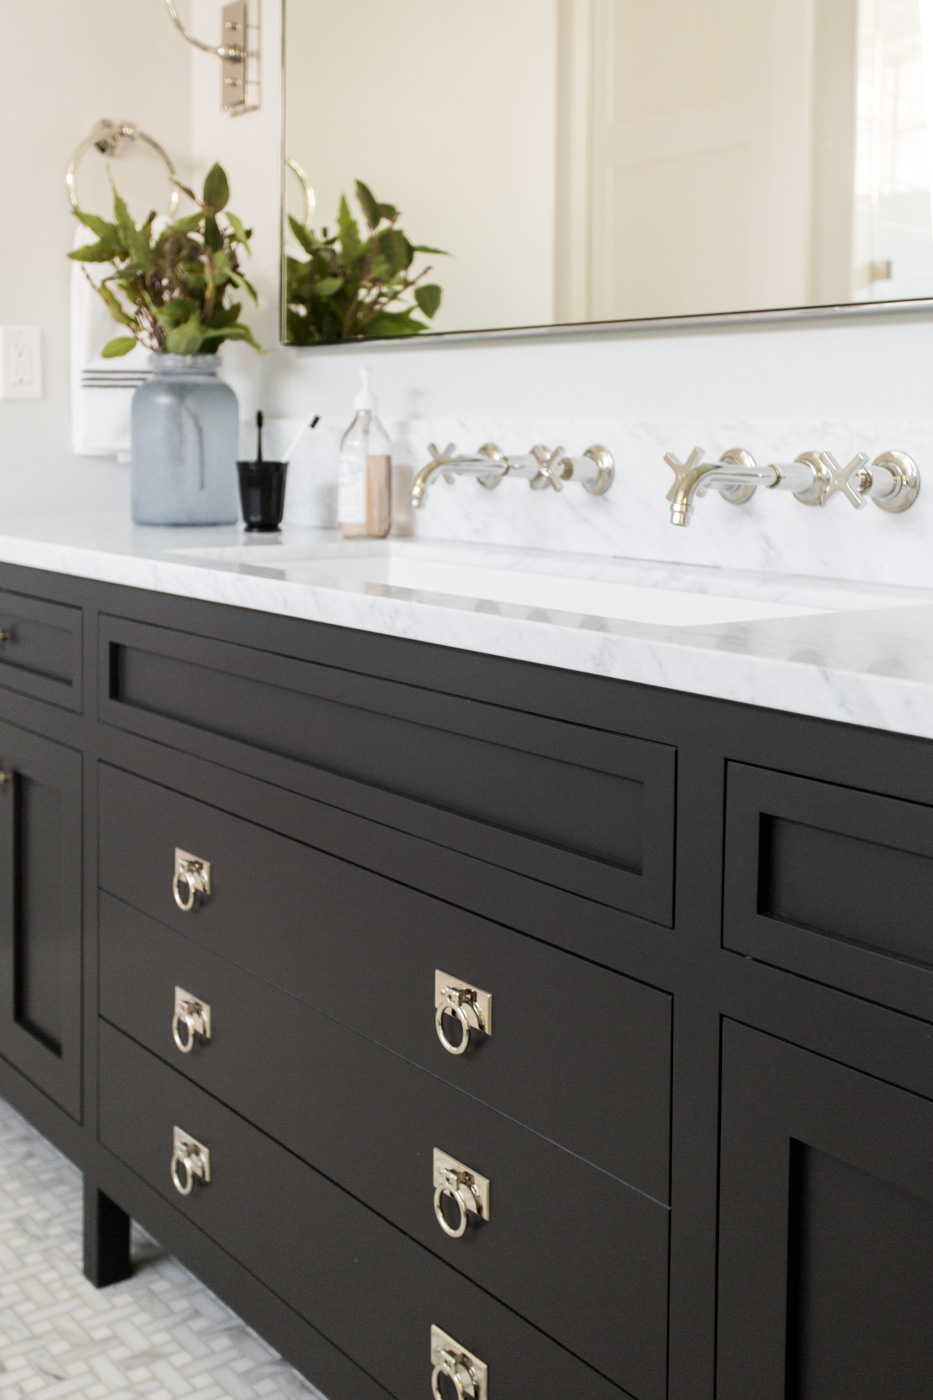 Silver handle details on black bathroom vanity